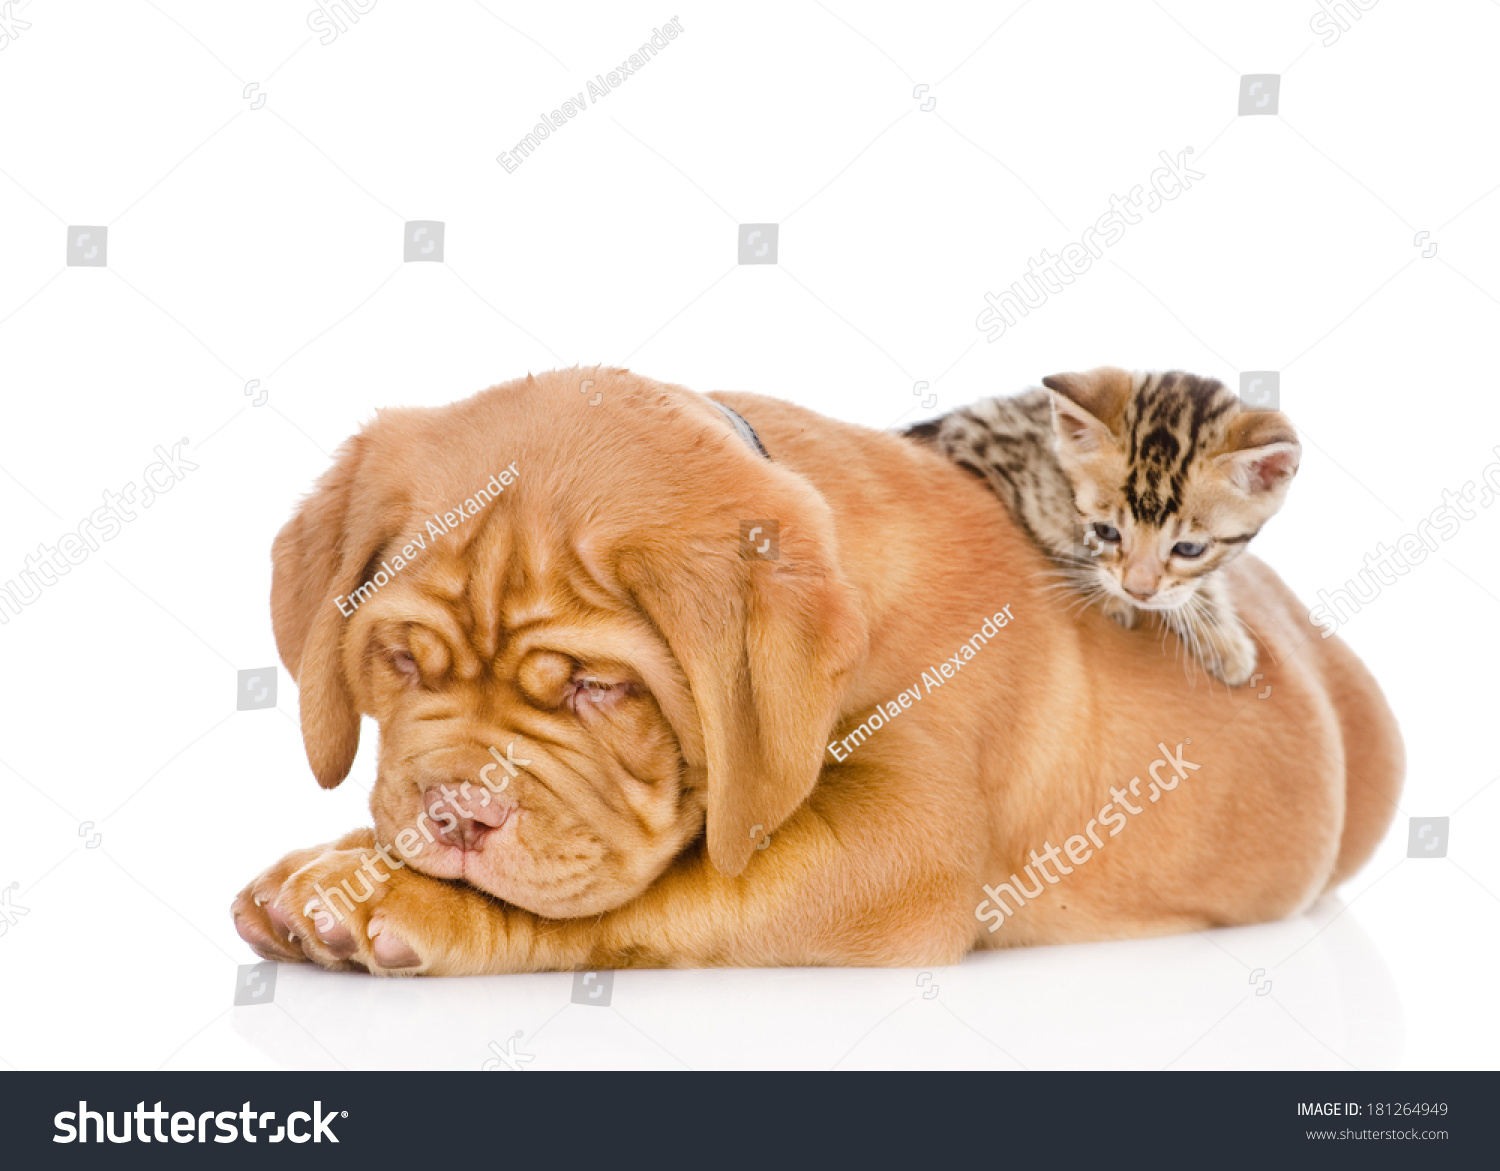 kitten playing with a puppy. isolated on white background #181264949